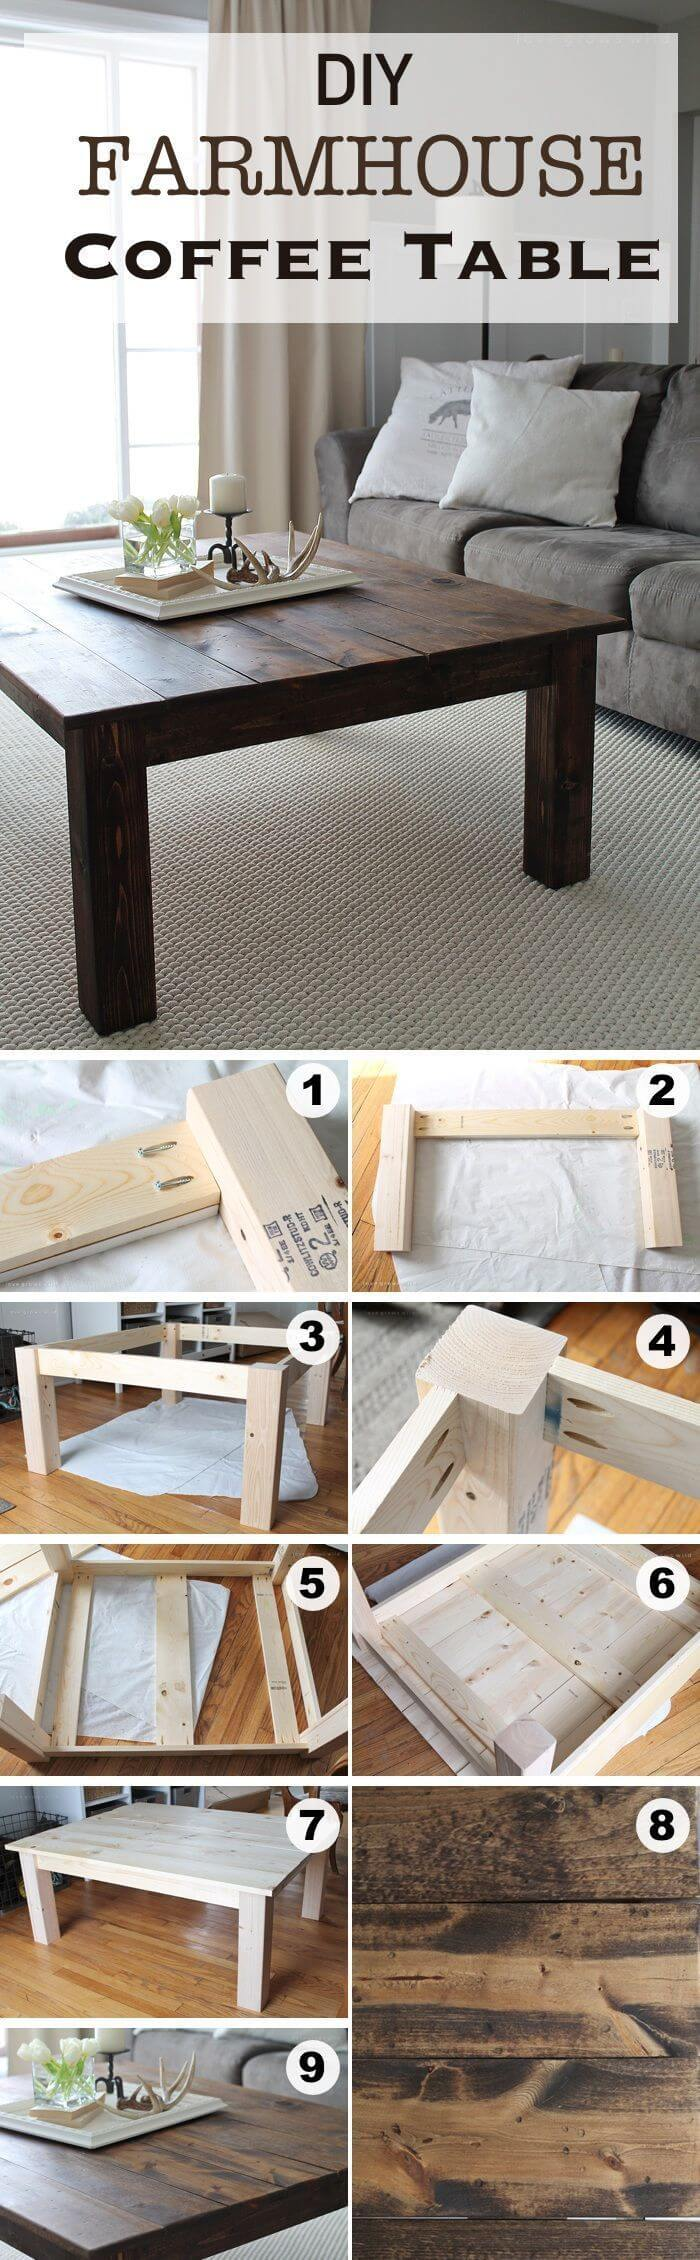 Basic Blocky DIY Farmhousee Coffe Table Ideas